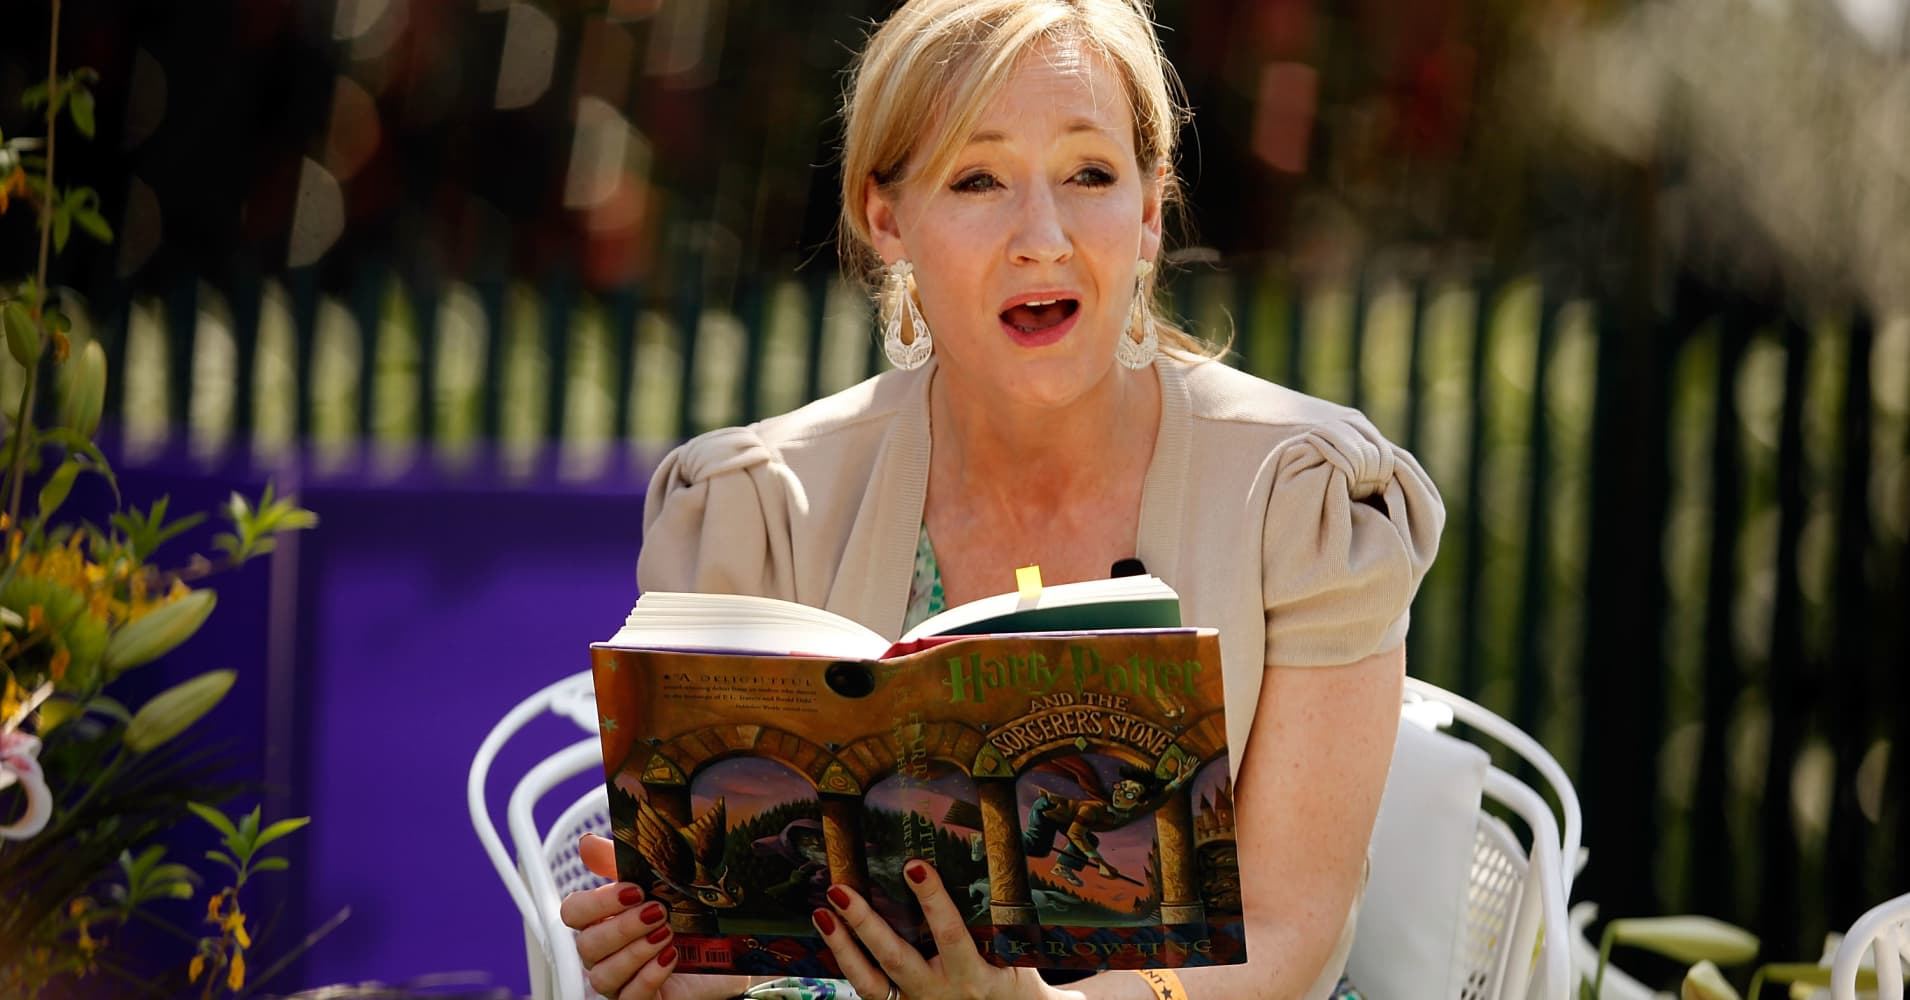 British author J.K. Rowling, creator of the Harry Potter fantasy series.